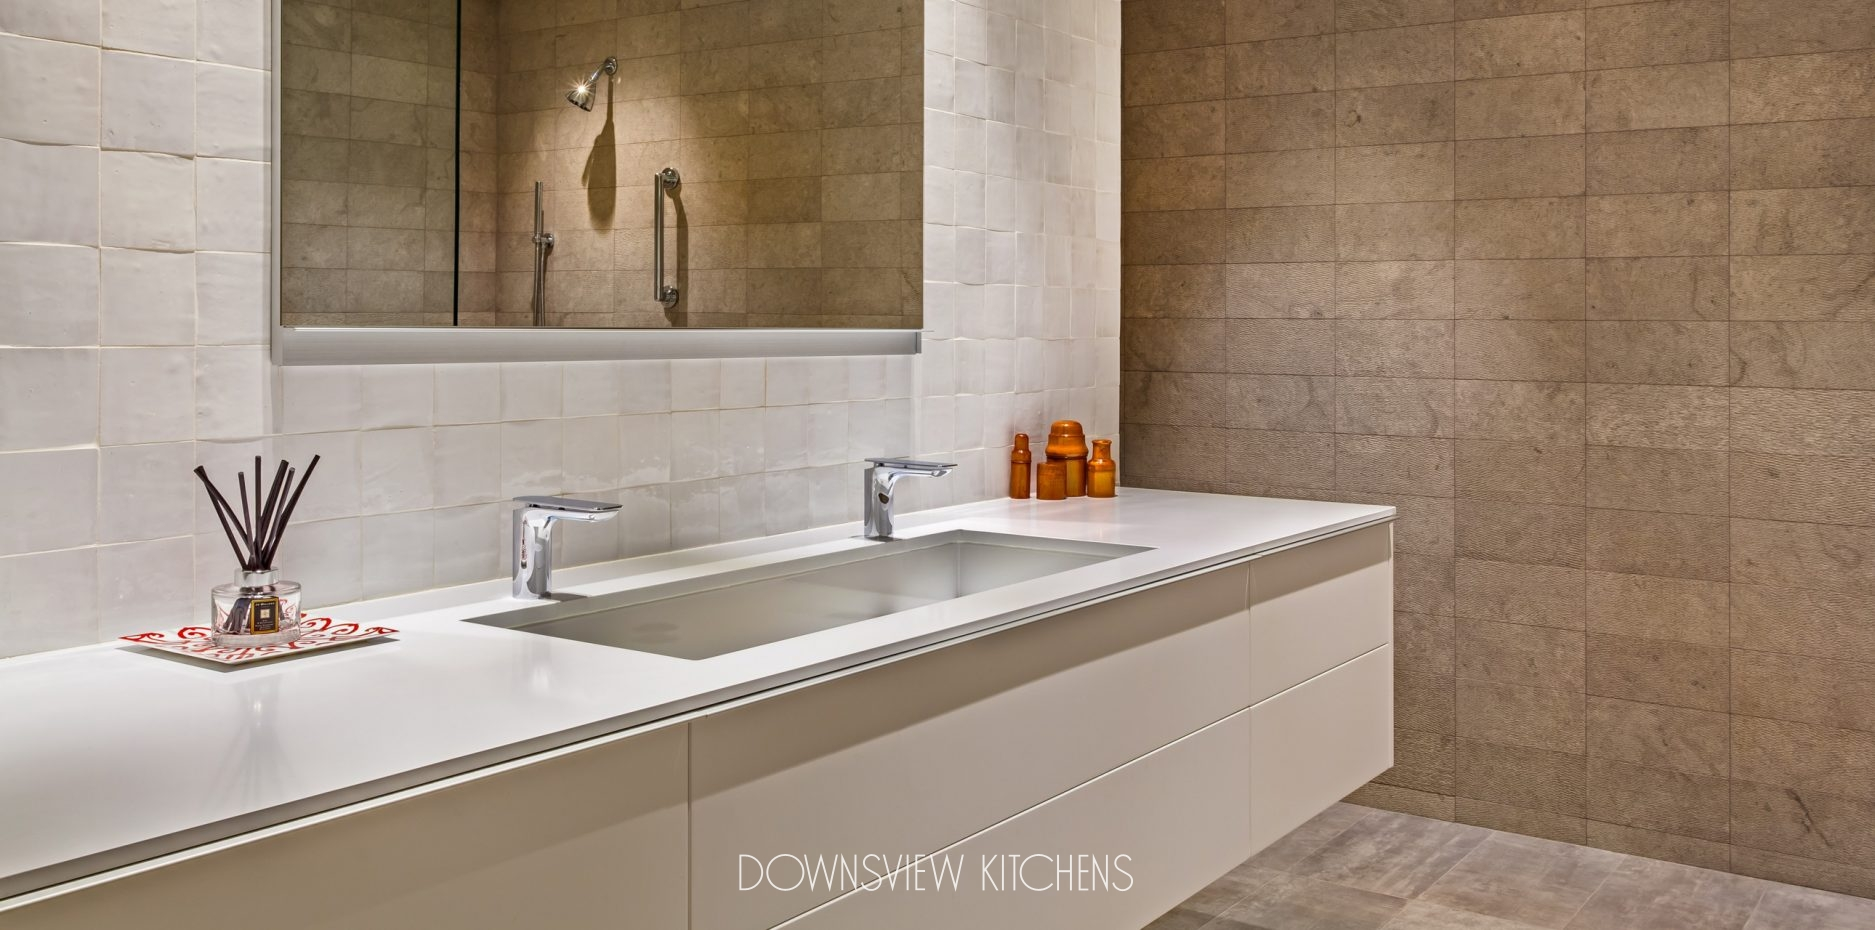 Linear Luxury Downsview Kitchens And Fine Custom Cabinetry